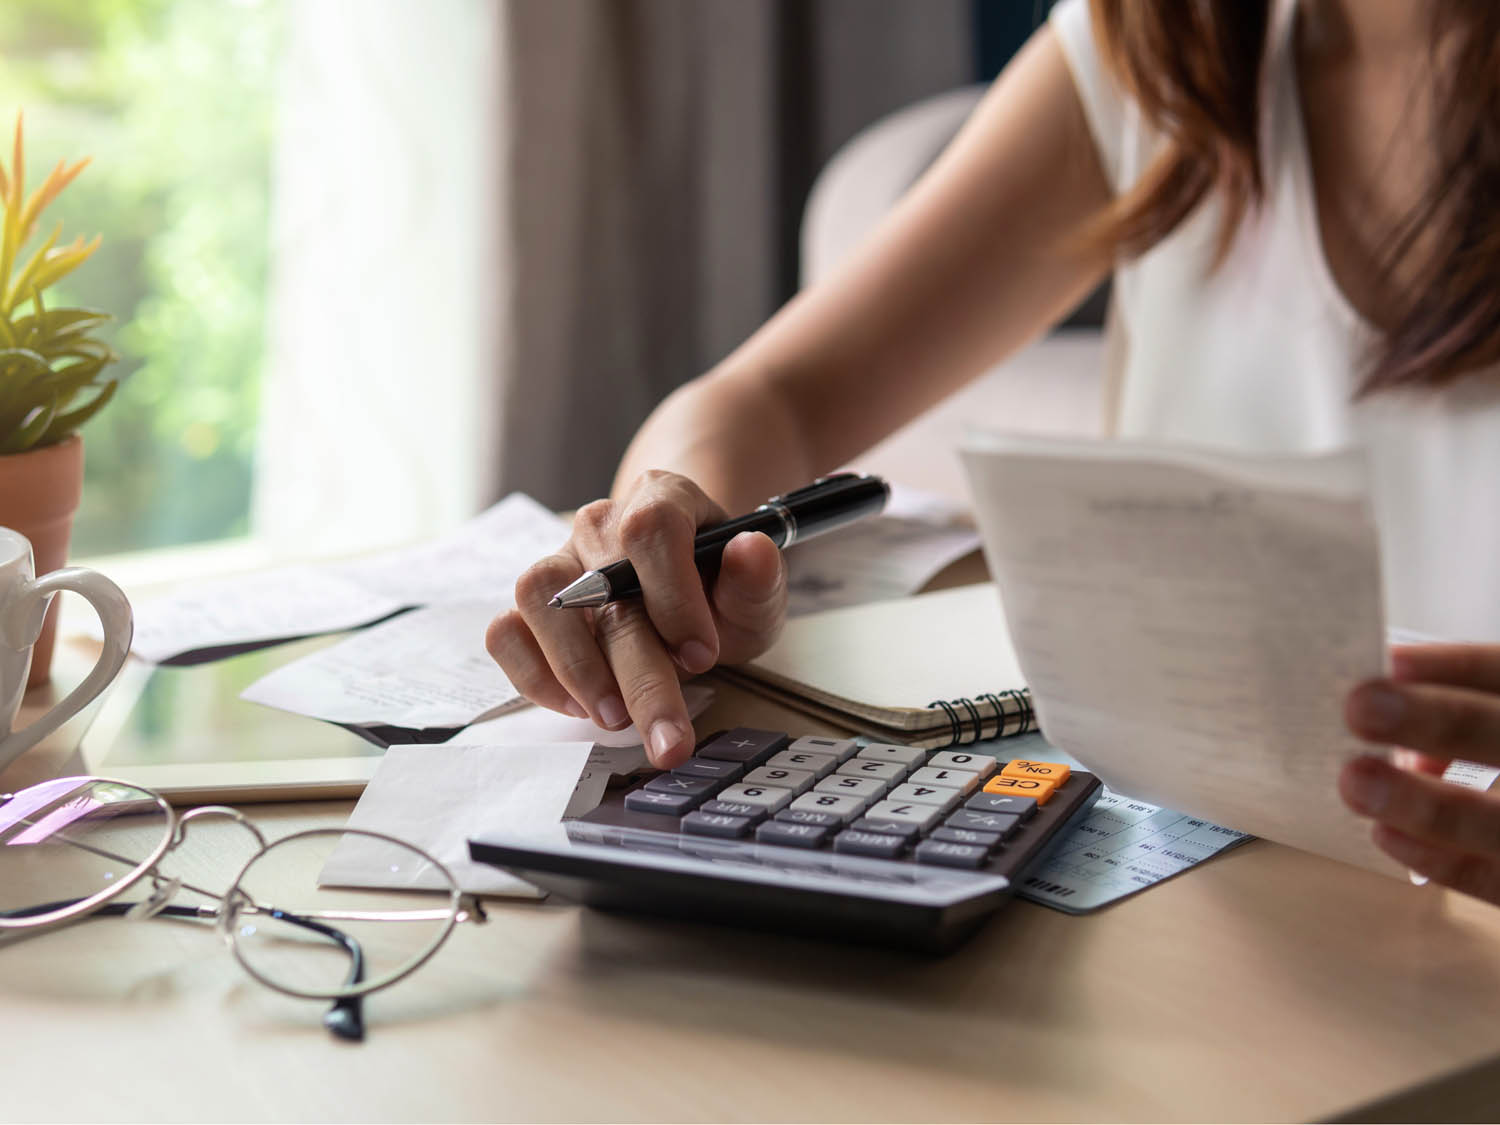 Finding a loan at a great rate can be a real struggle. It's rough because you need the money now but don't want to suffer through the payment. We'll help you find the best low credit lenders available to get you the best rate on your loan.